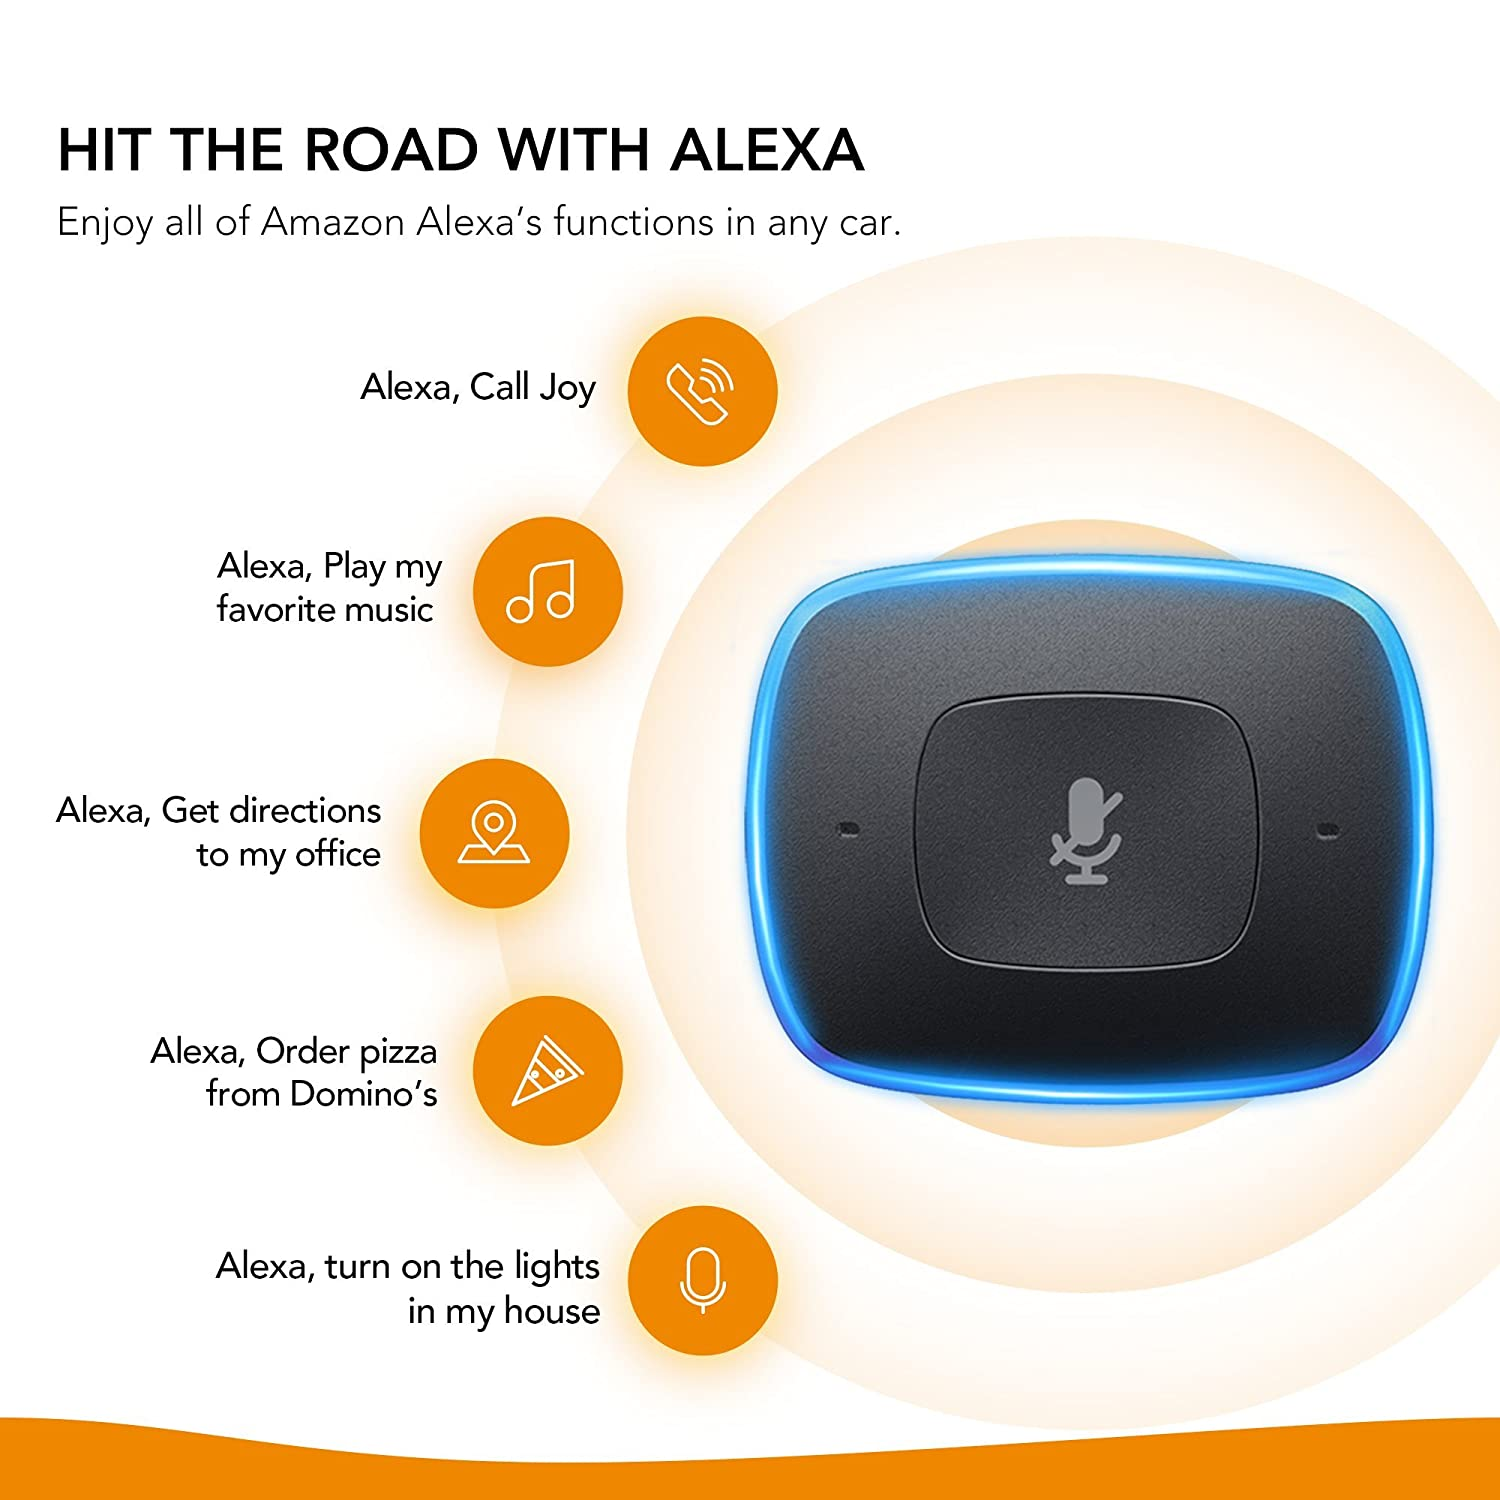 Roav Viva With Car Mount By Anker Alexa Enabled 2 Port 350 Clk Electrical Wiring Diagram Usb Charger For In Navigation Hands Free Calling And Music Streaming Cell